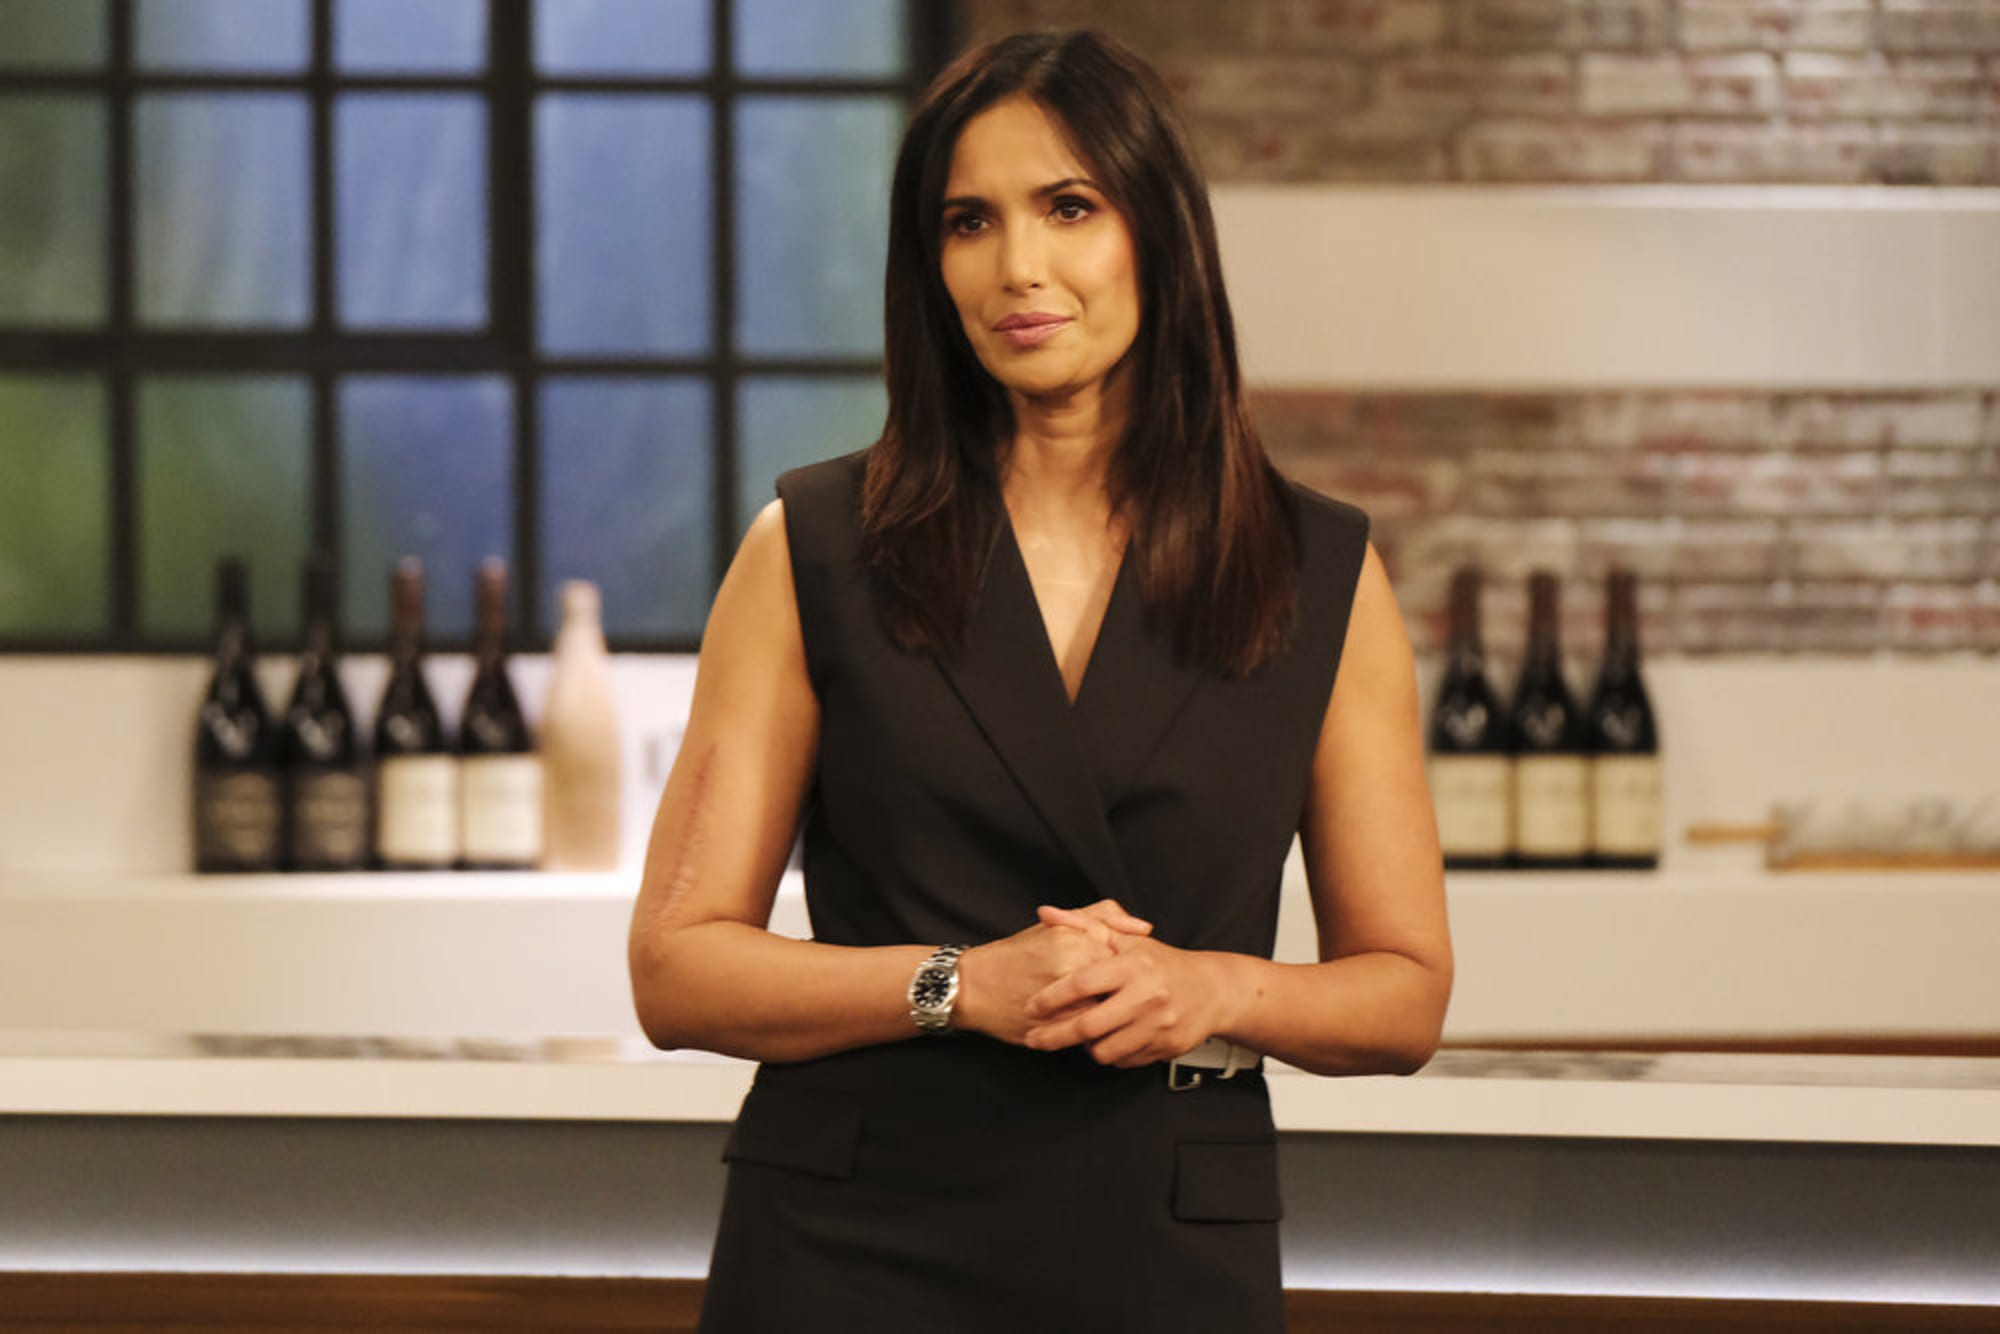 Top Chef spinoff coming to the Peacock streaming service